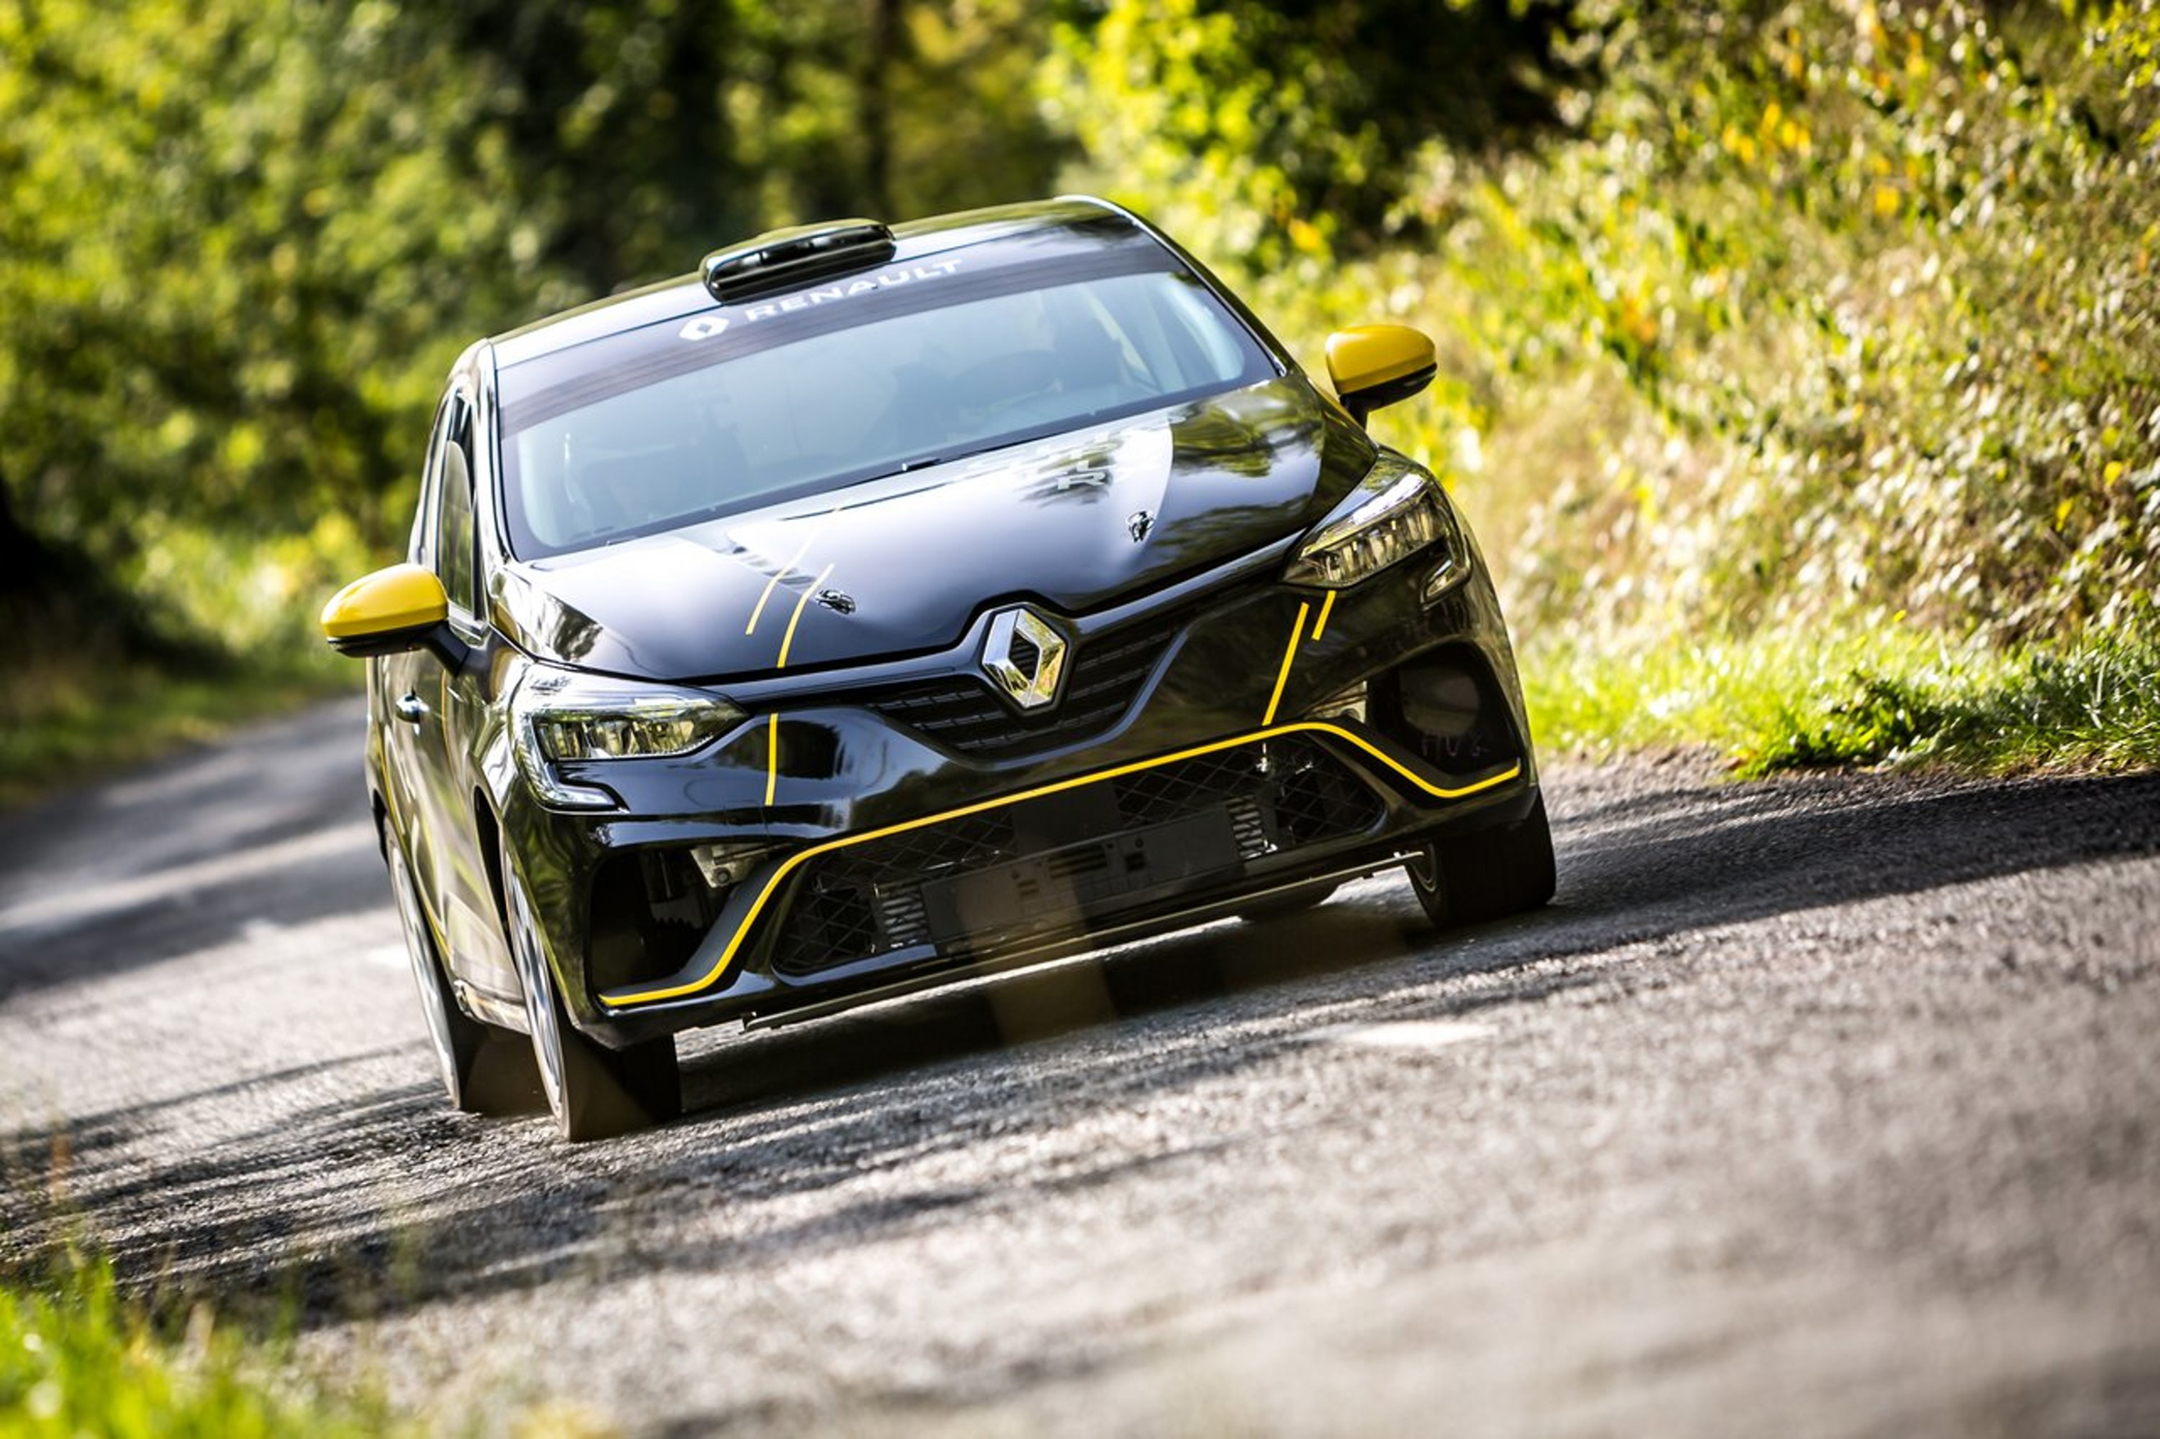 Renault Clio Rally - 2020 - front / avant - on road / sur route